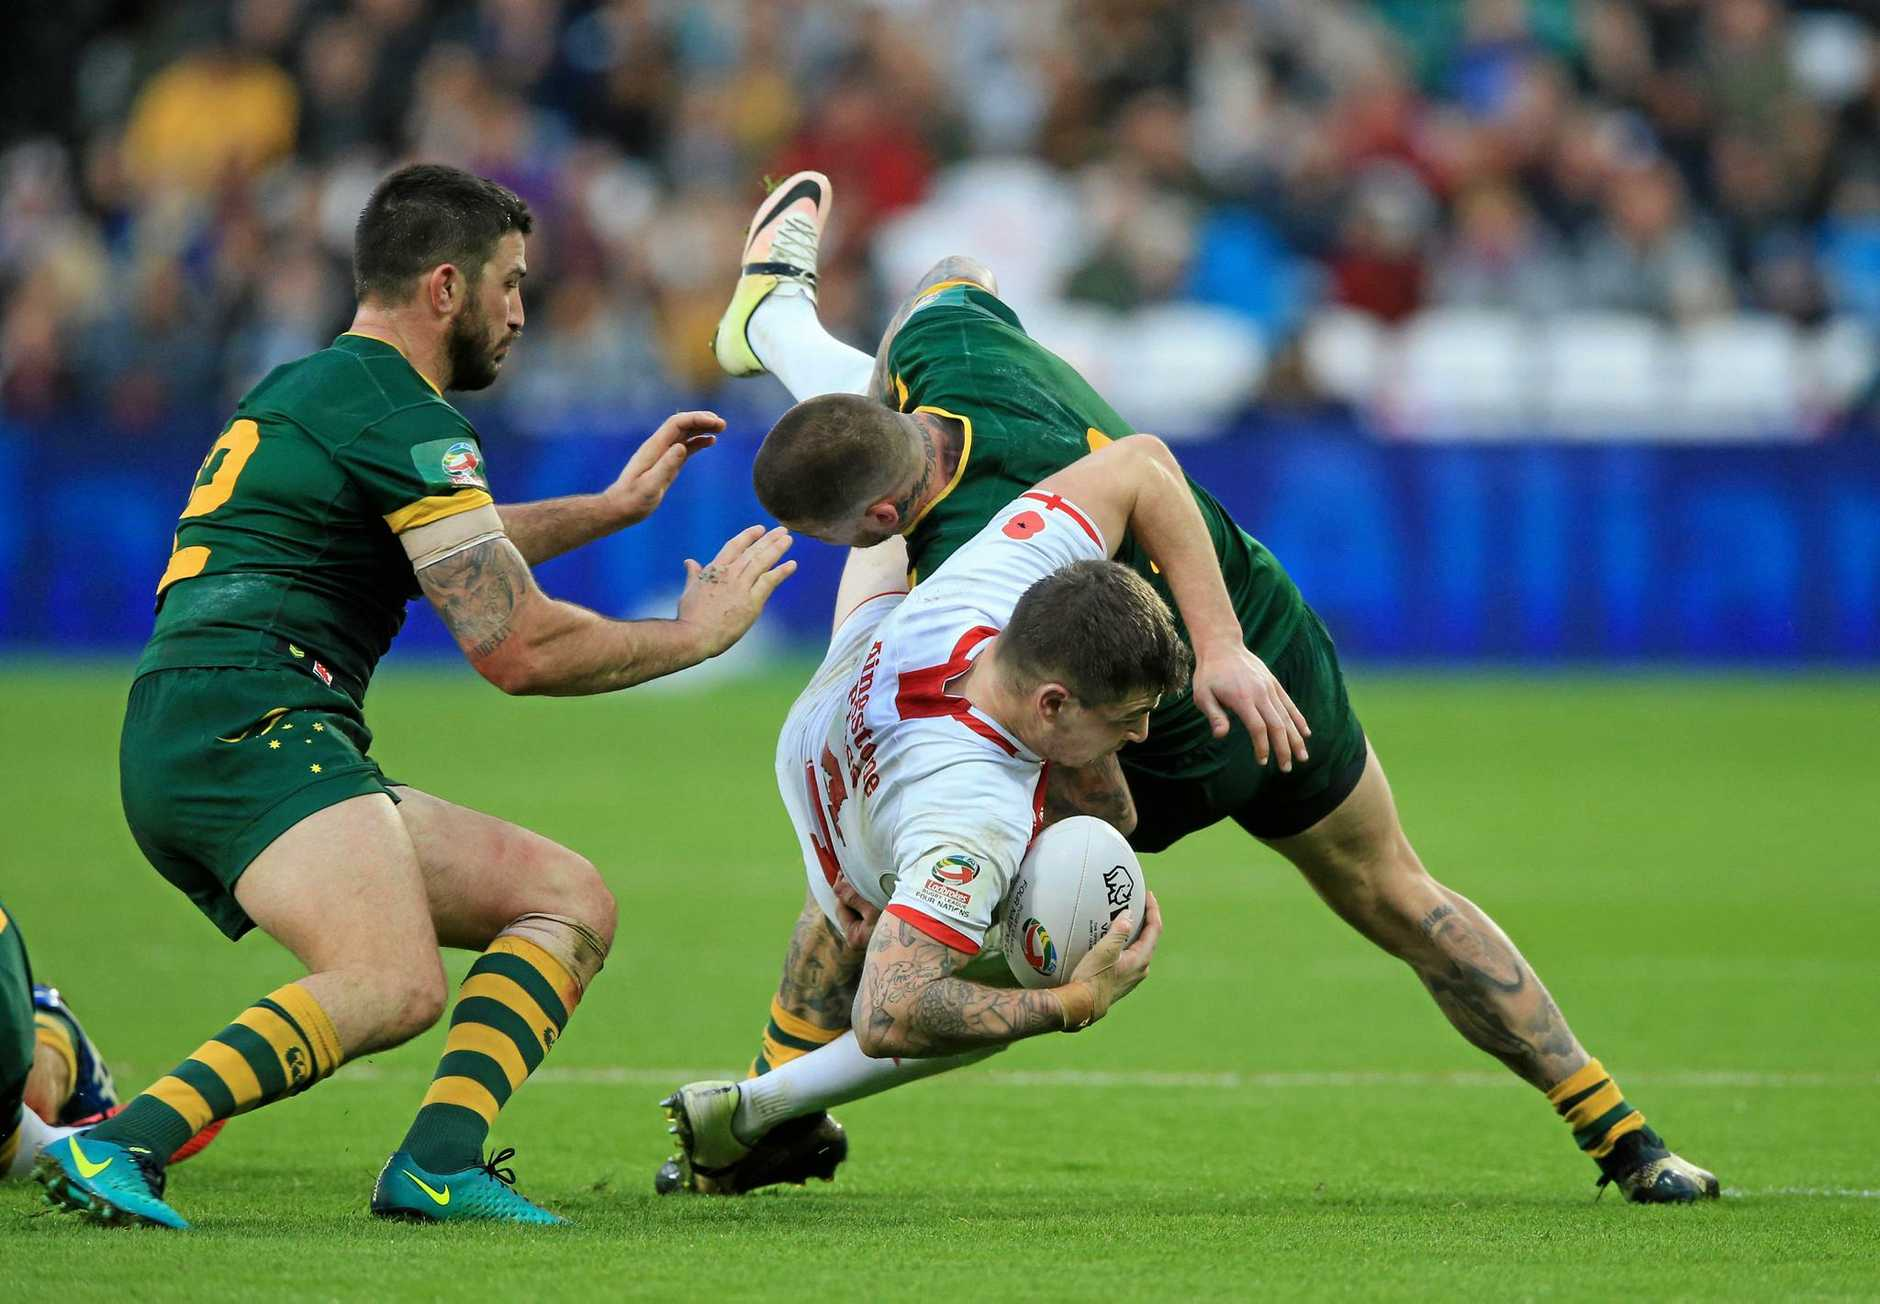 England's Mark Percival, center, is tackled by Australia's Josh Dugan, right, during their Four Nations rugby league match at London Stadium in London, Sunday, Nov. 13, 2016. (Nigel French/PA via AP)